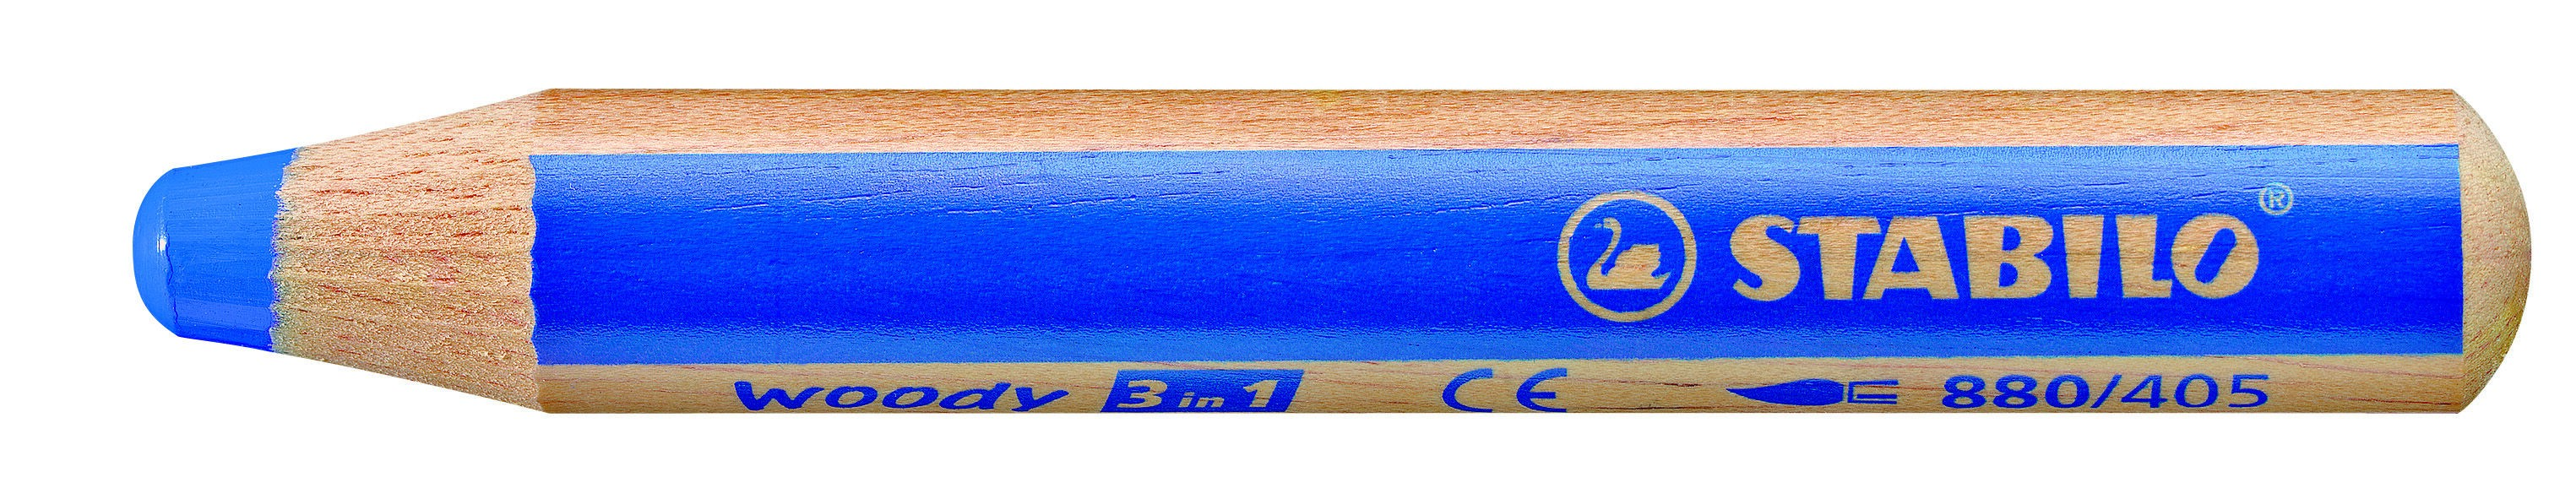 STABILO woody 3 in 1 - crayon de couleur pointe large - bleu d'outremer